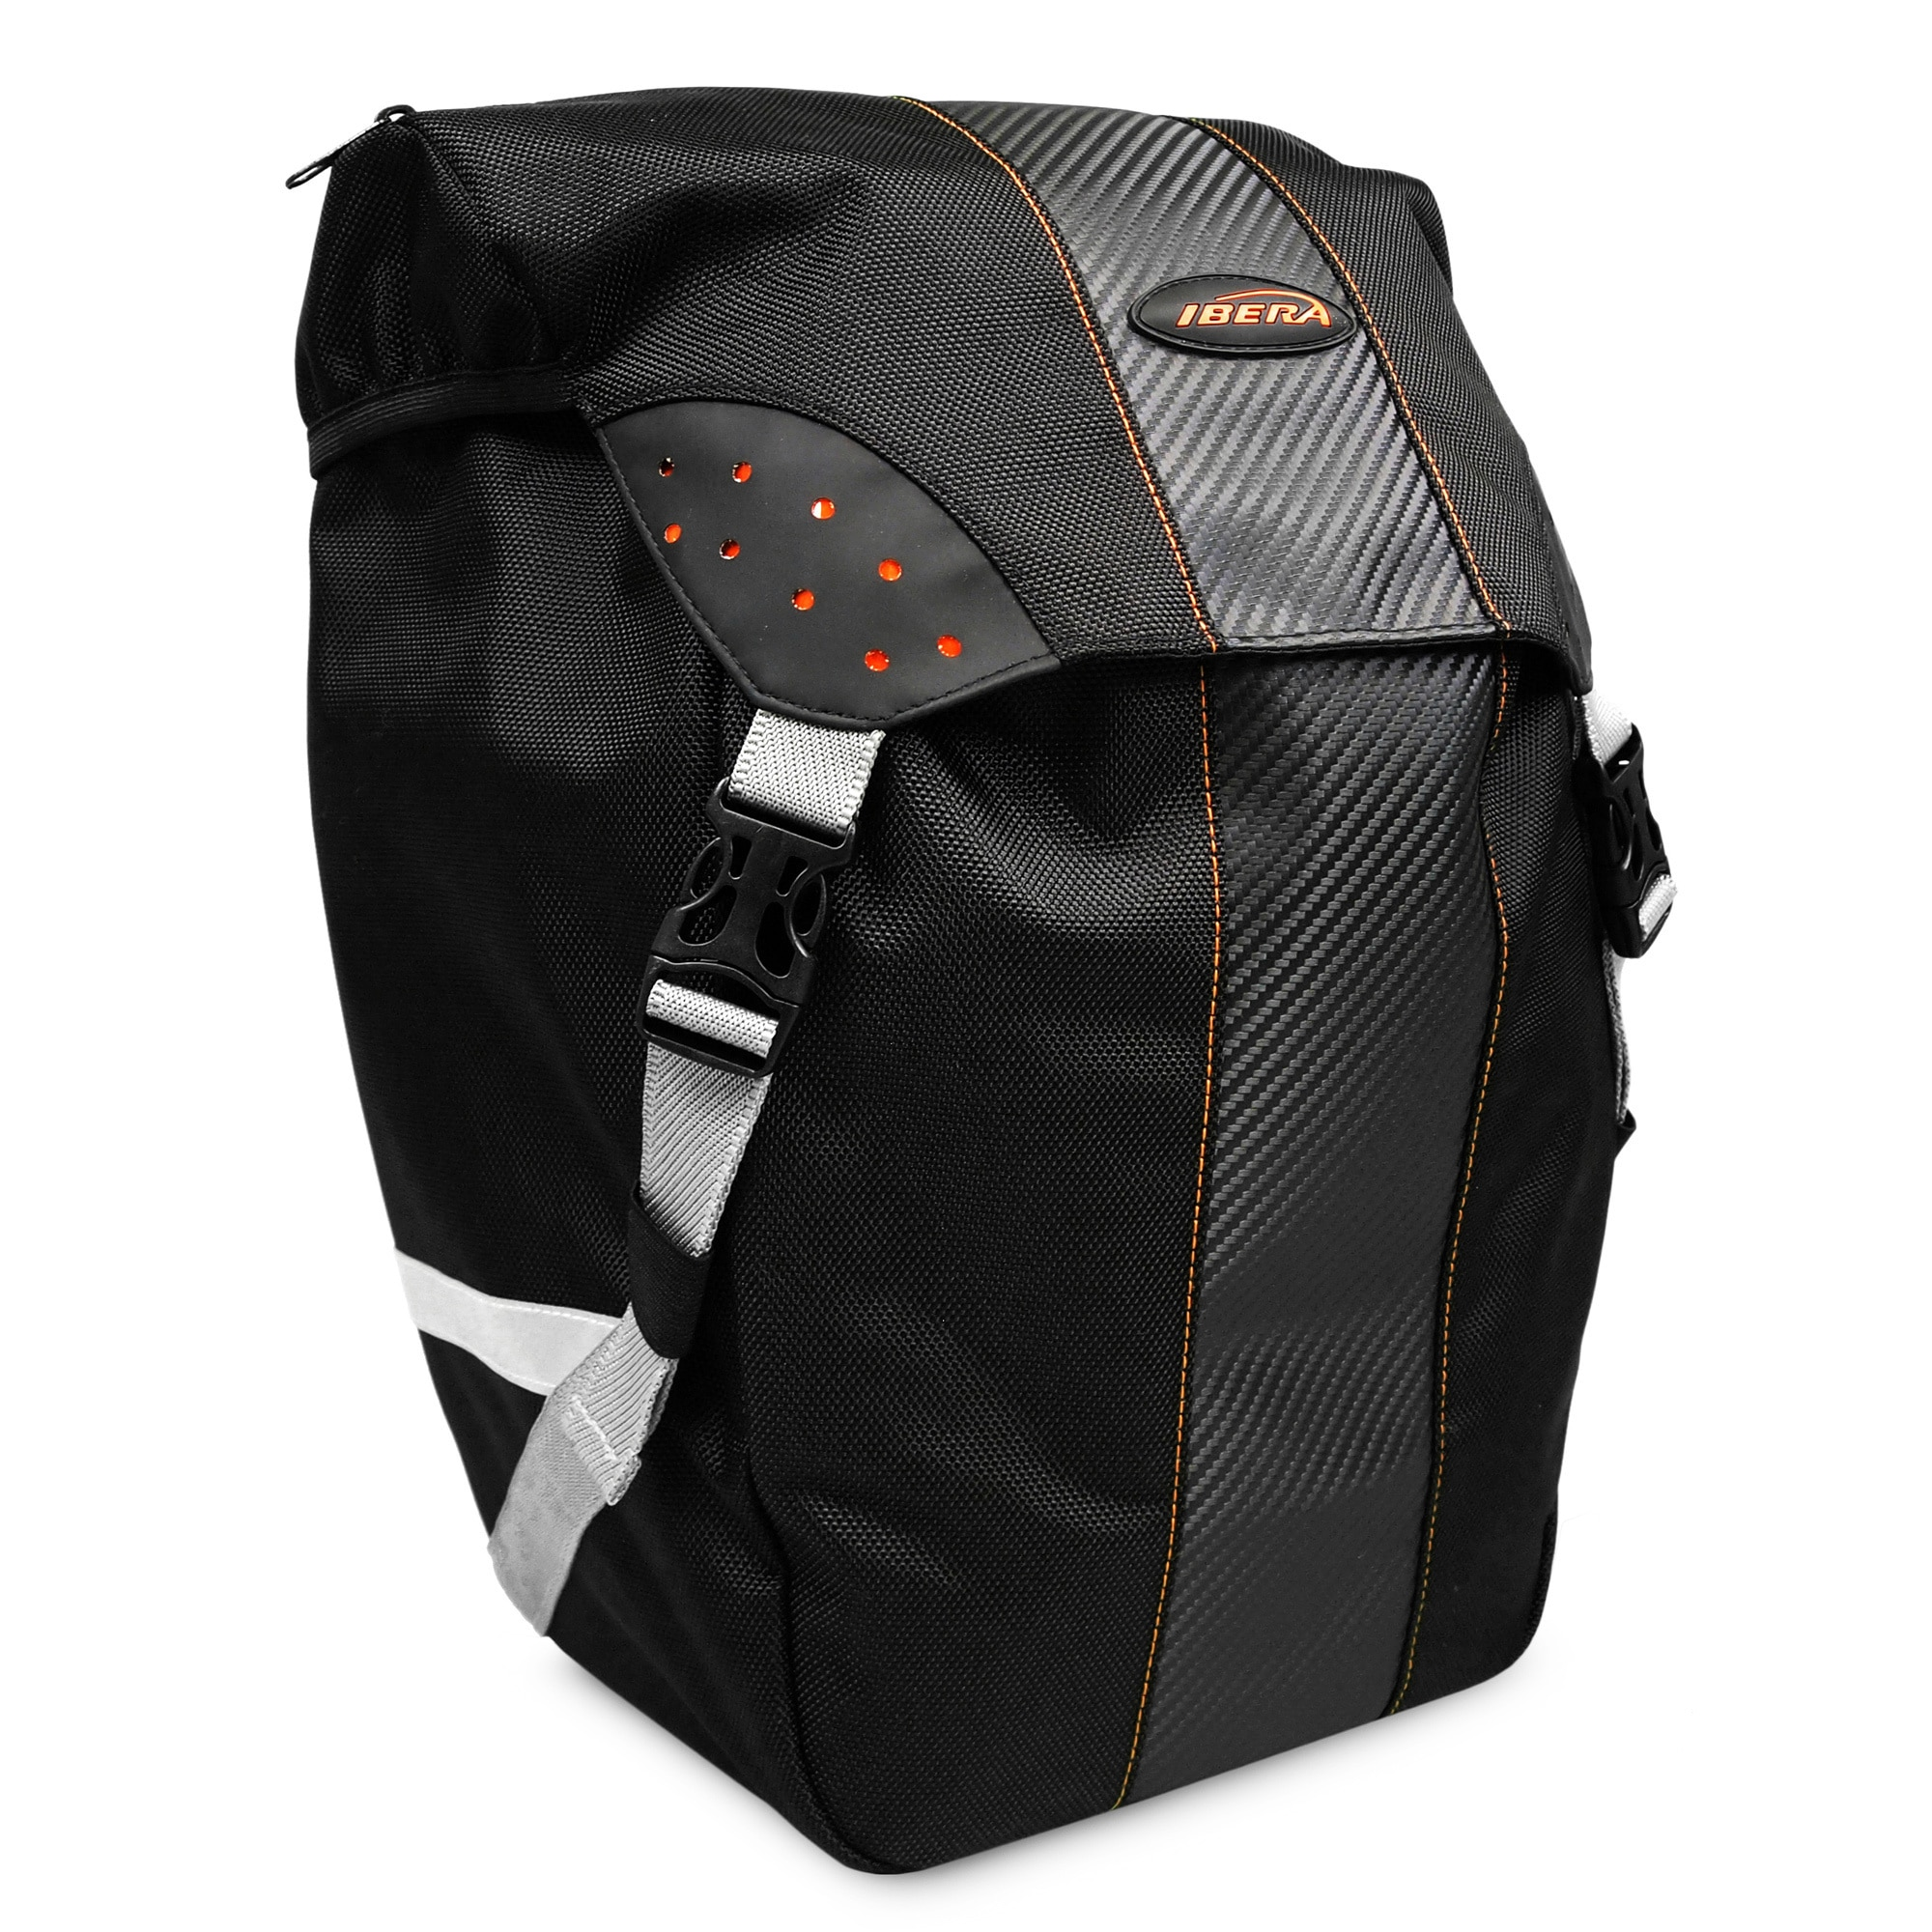 Ibera USA Ibera Bike PakRak All-Weather Single Pannier with Rain Cover, Clip-On and Quick-Release